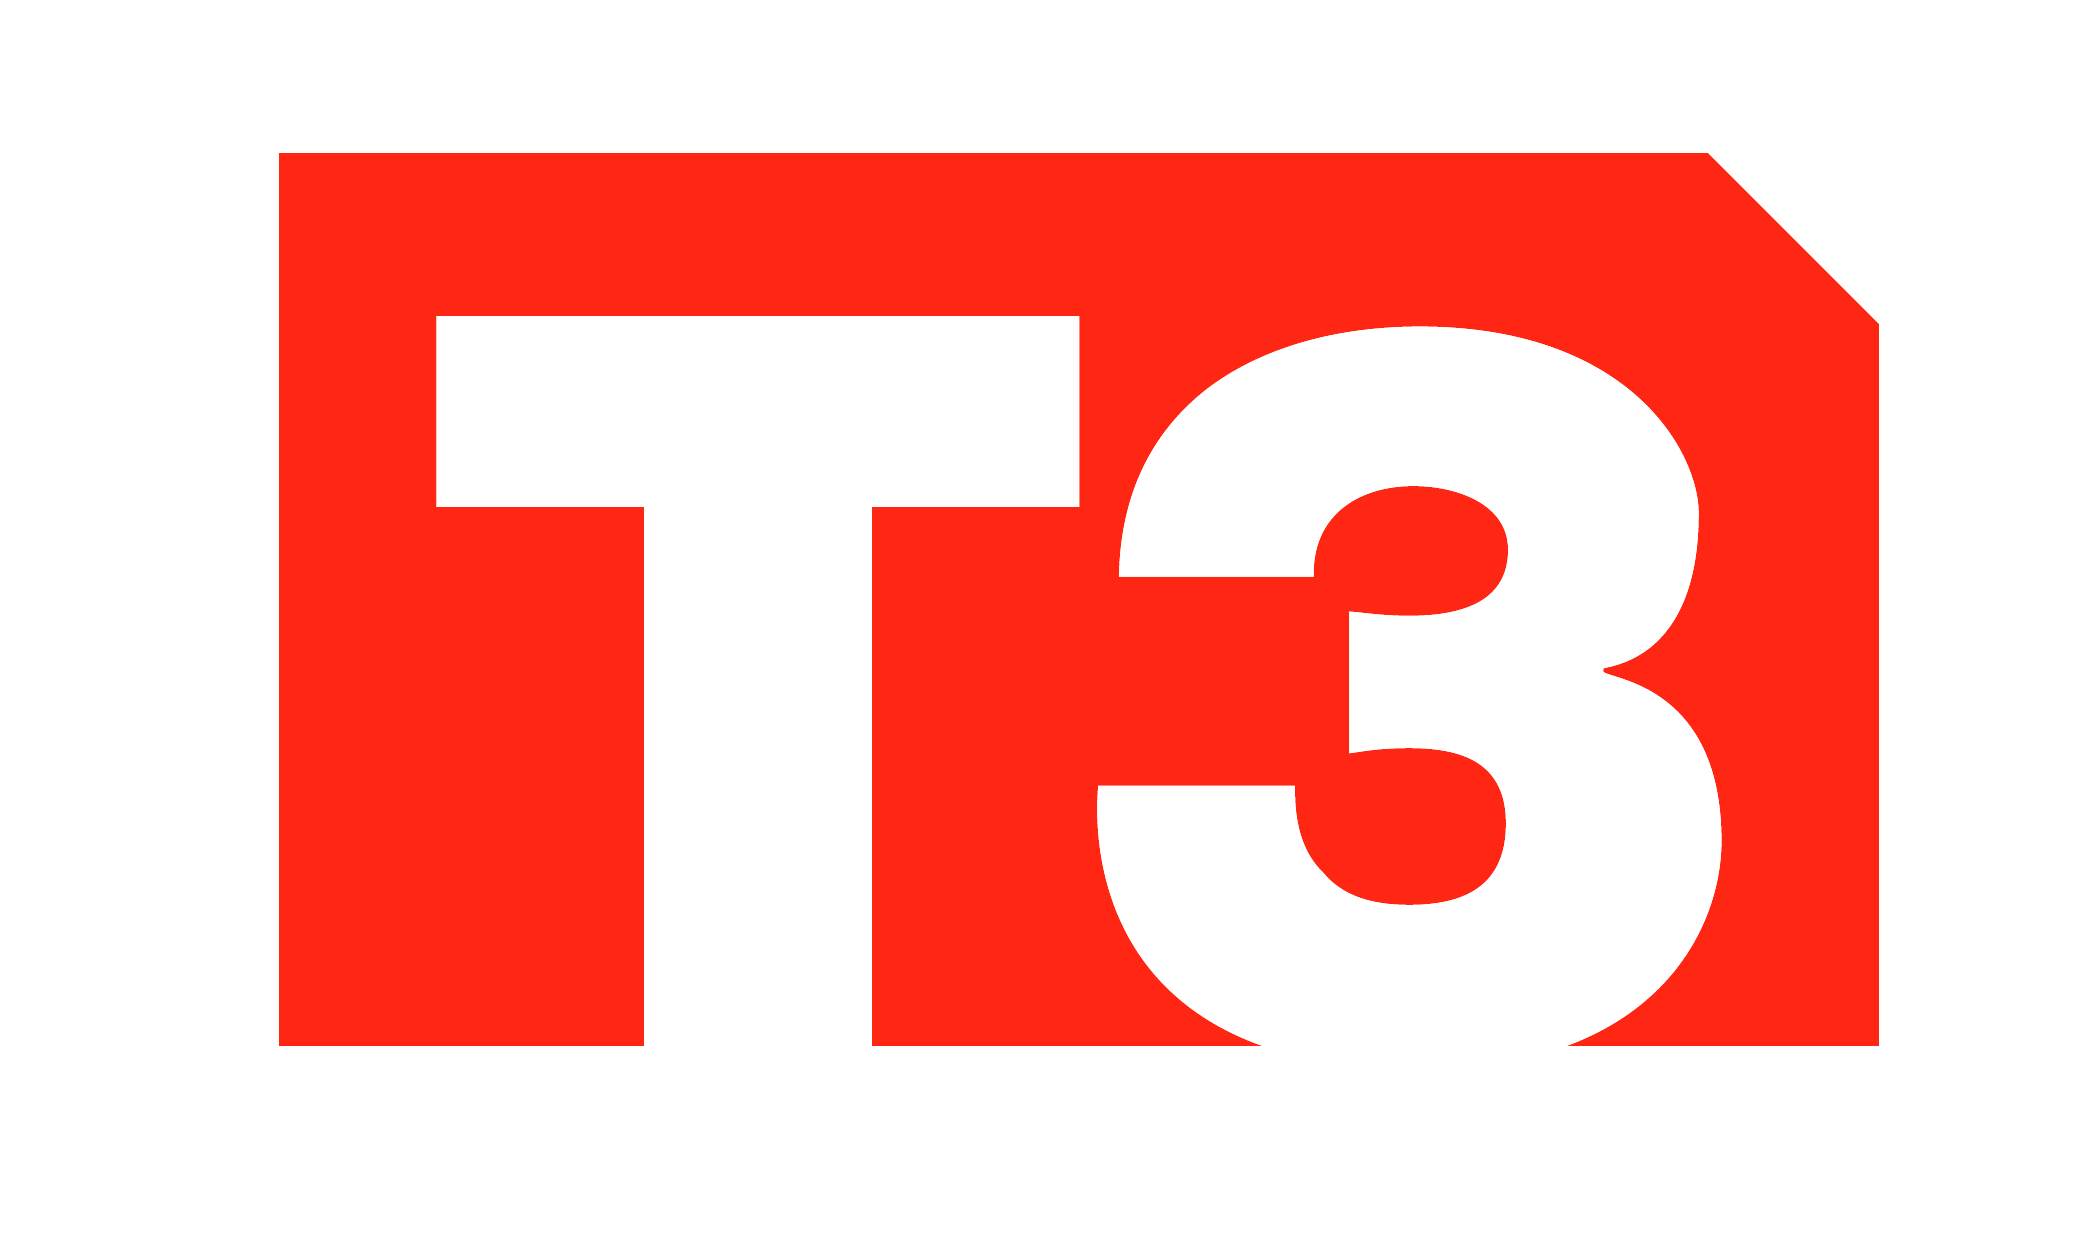 t3_logo_red.png